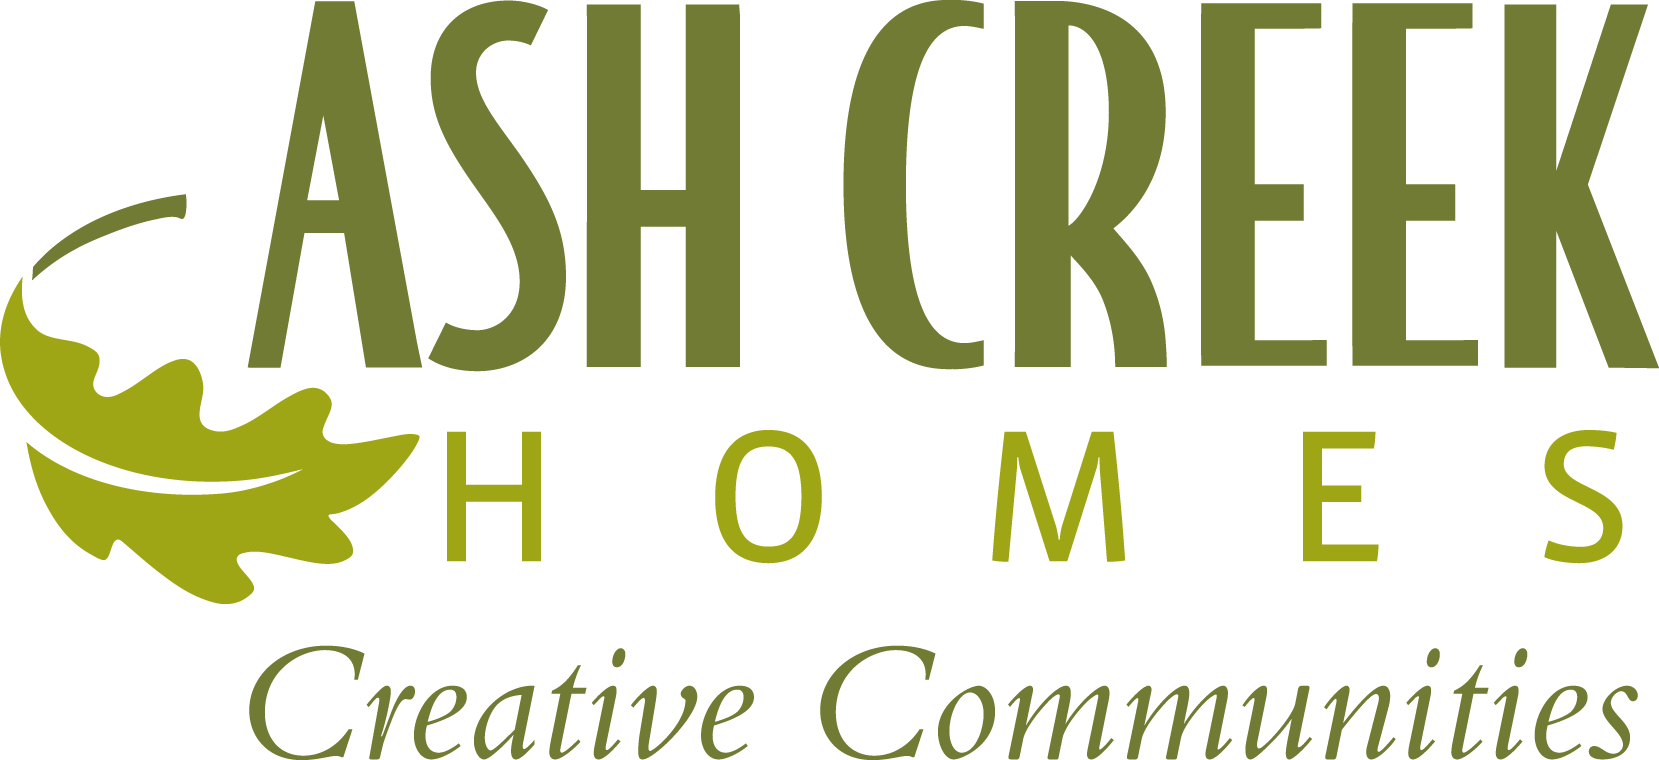 Ash Creek Homes - Honey Creek Logo